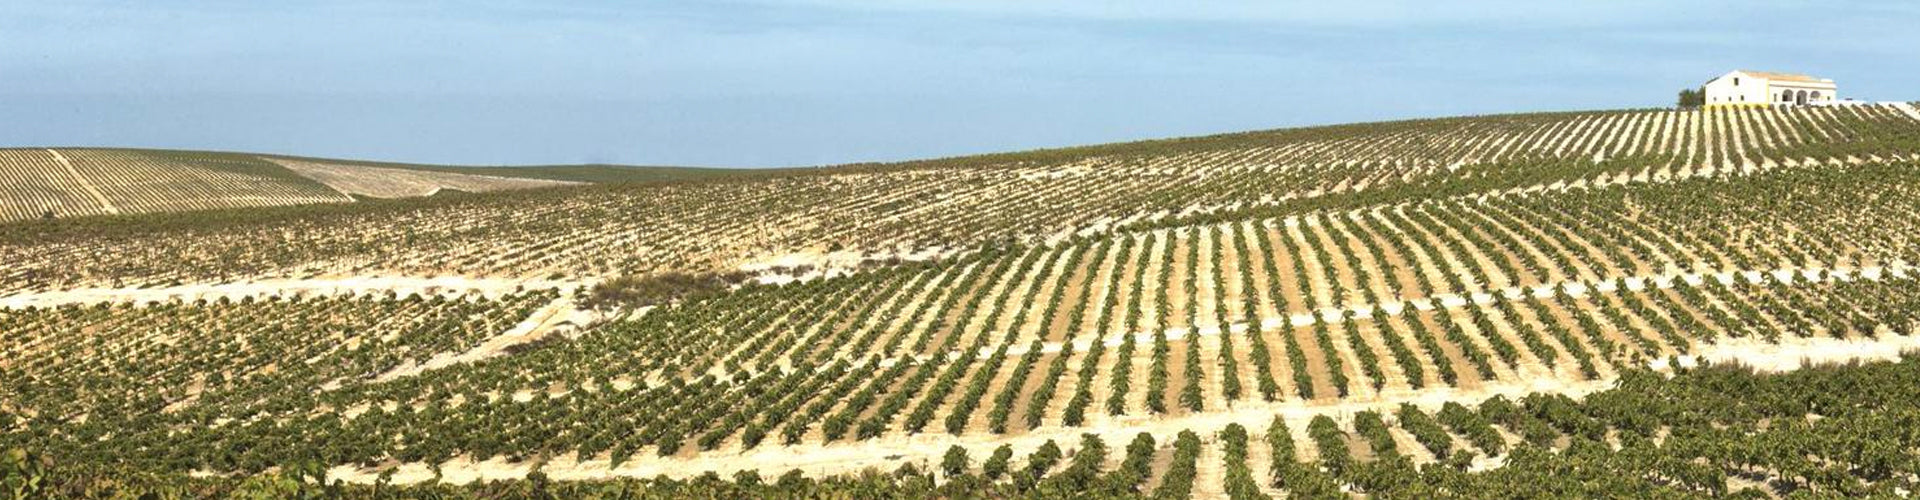 Valdespino's Marcharnudo Vineyard the Grand Cru of the Sherry DO